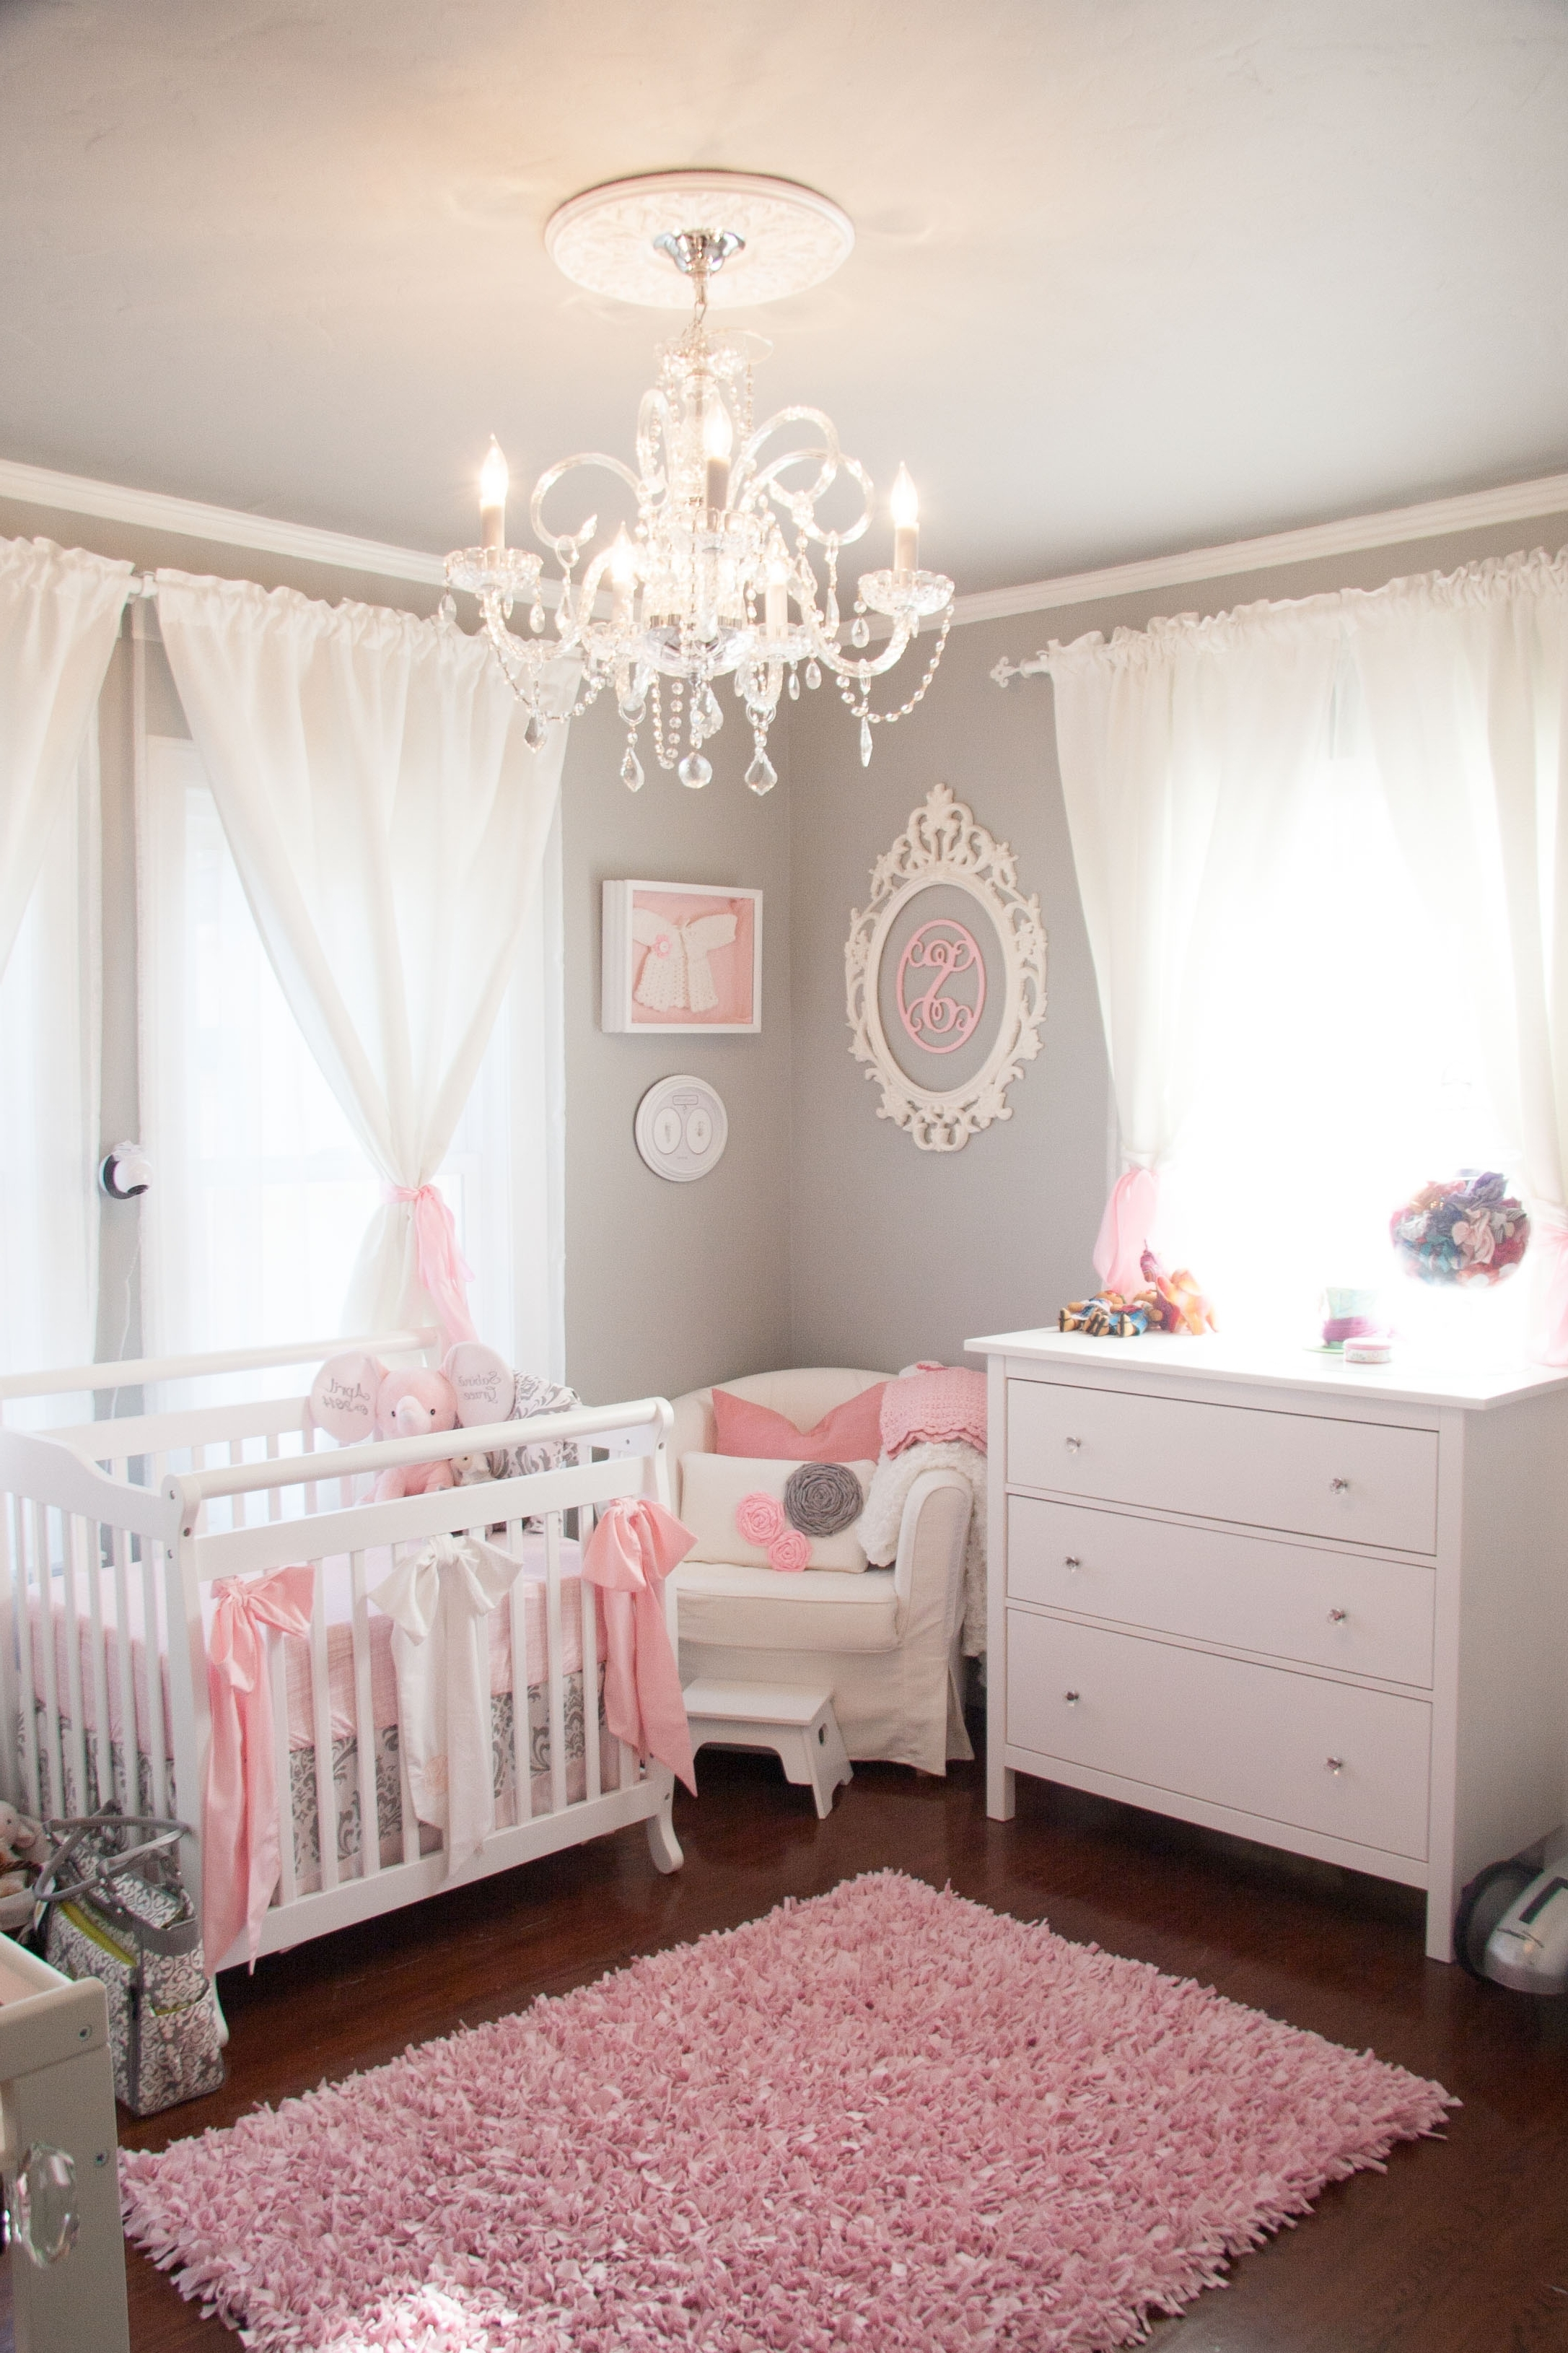 Favorite Tiny Budget In A Tiny Room For A Tiny Princess – Project Nursery Intended For Chandeliers For Girl Nursery (View 3 of 15)